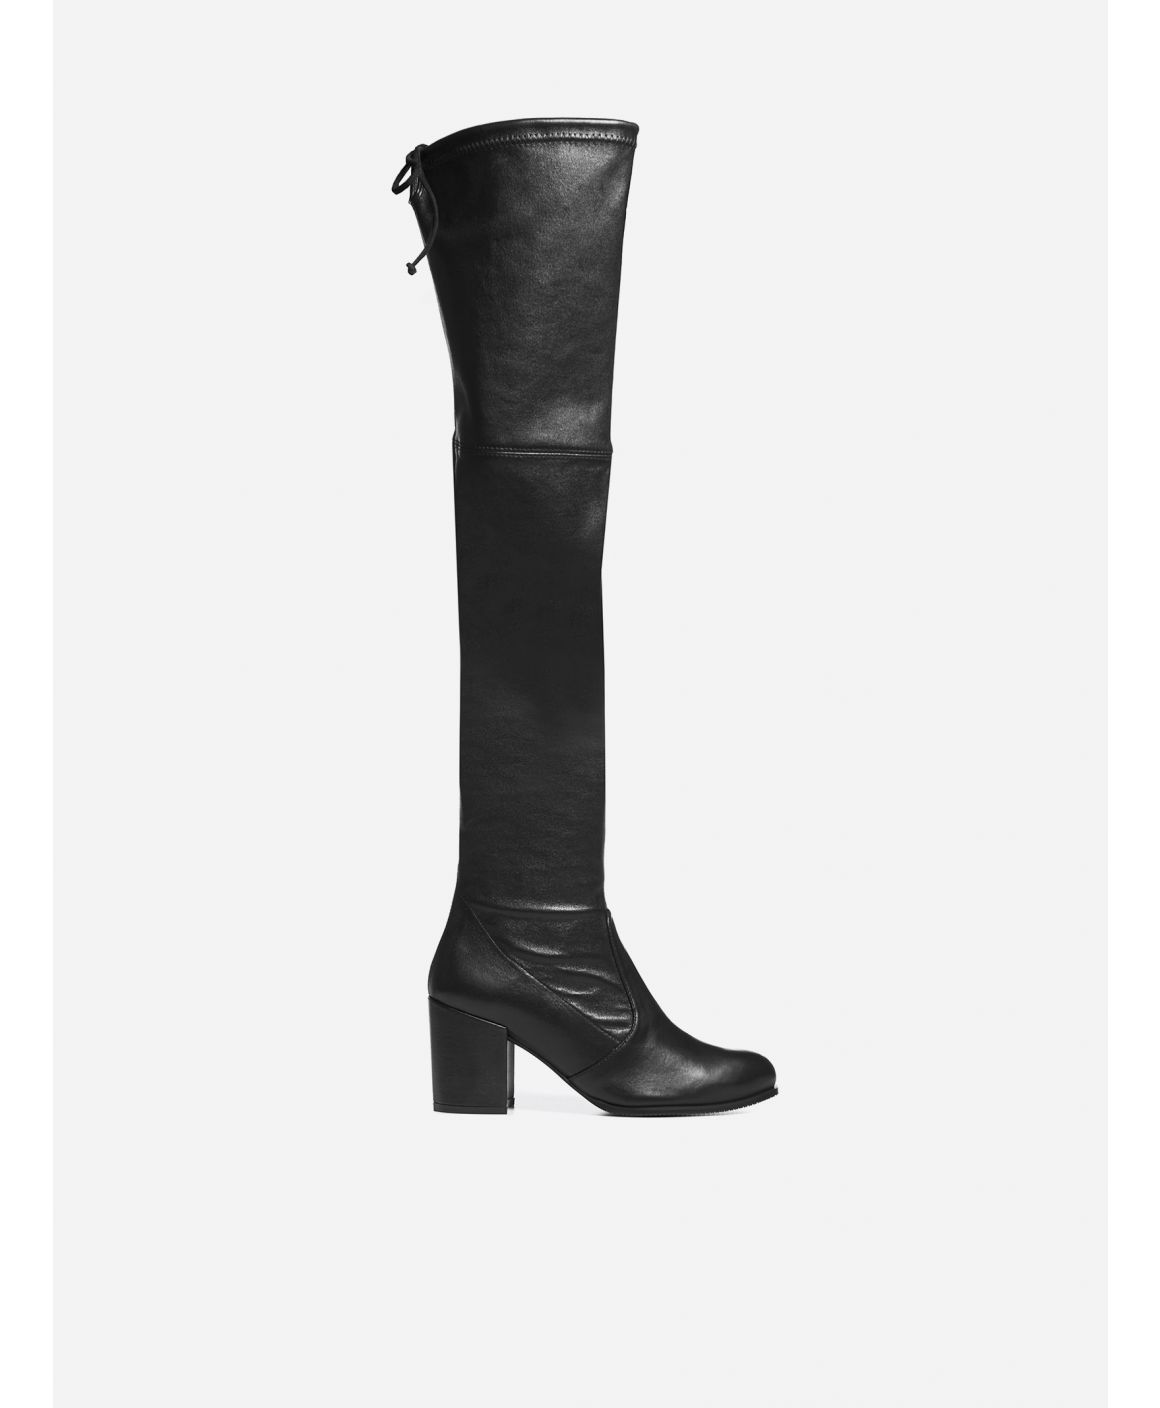 Tieland nappa leather over-the-knee boots